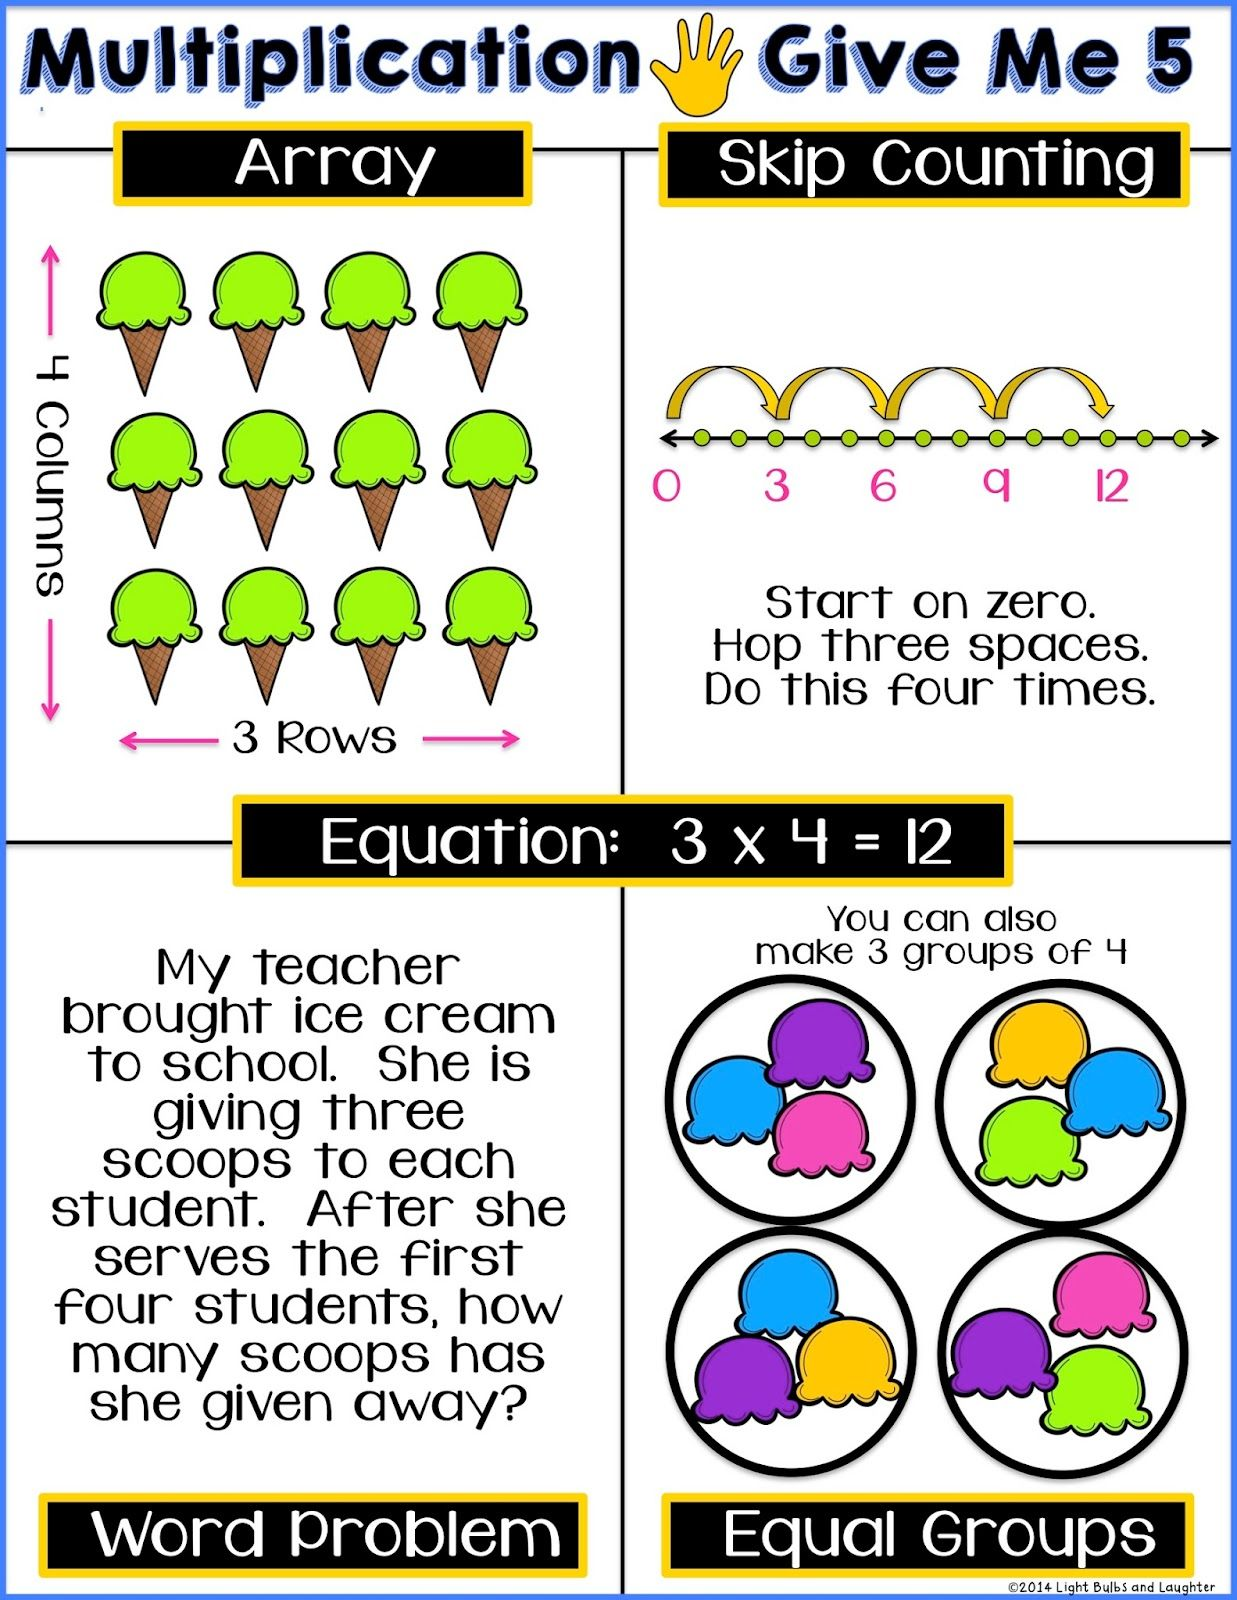 Multiplication Give Me 5 Poster And Worksheet